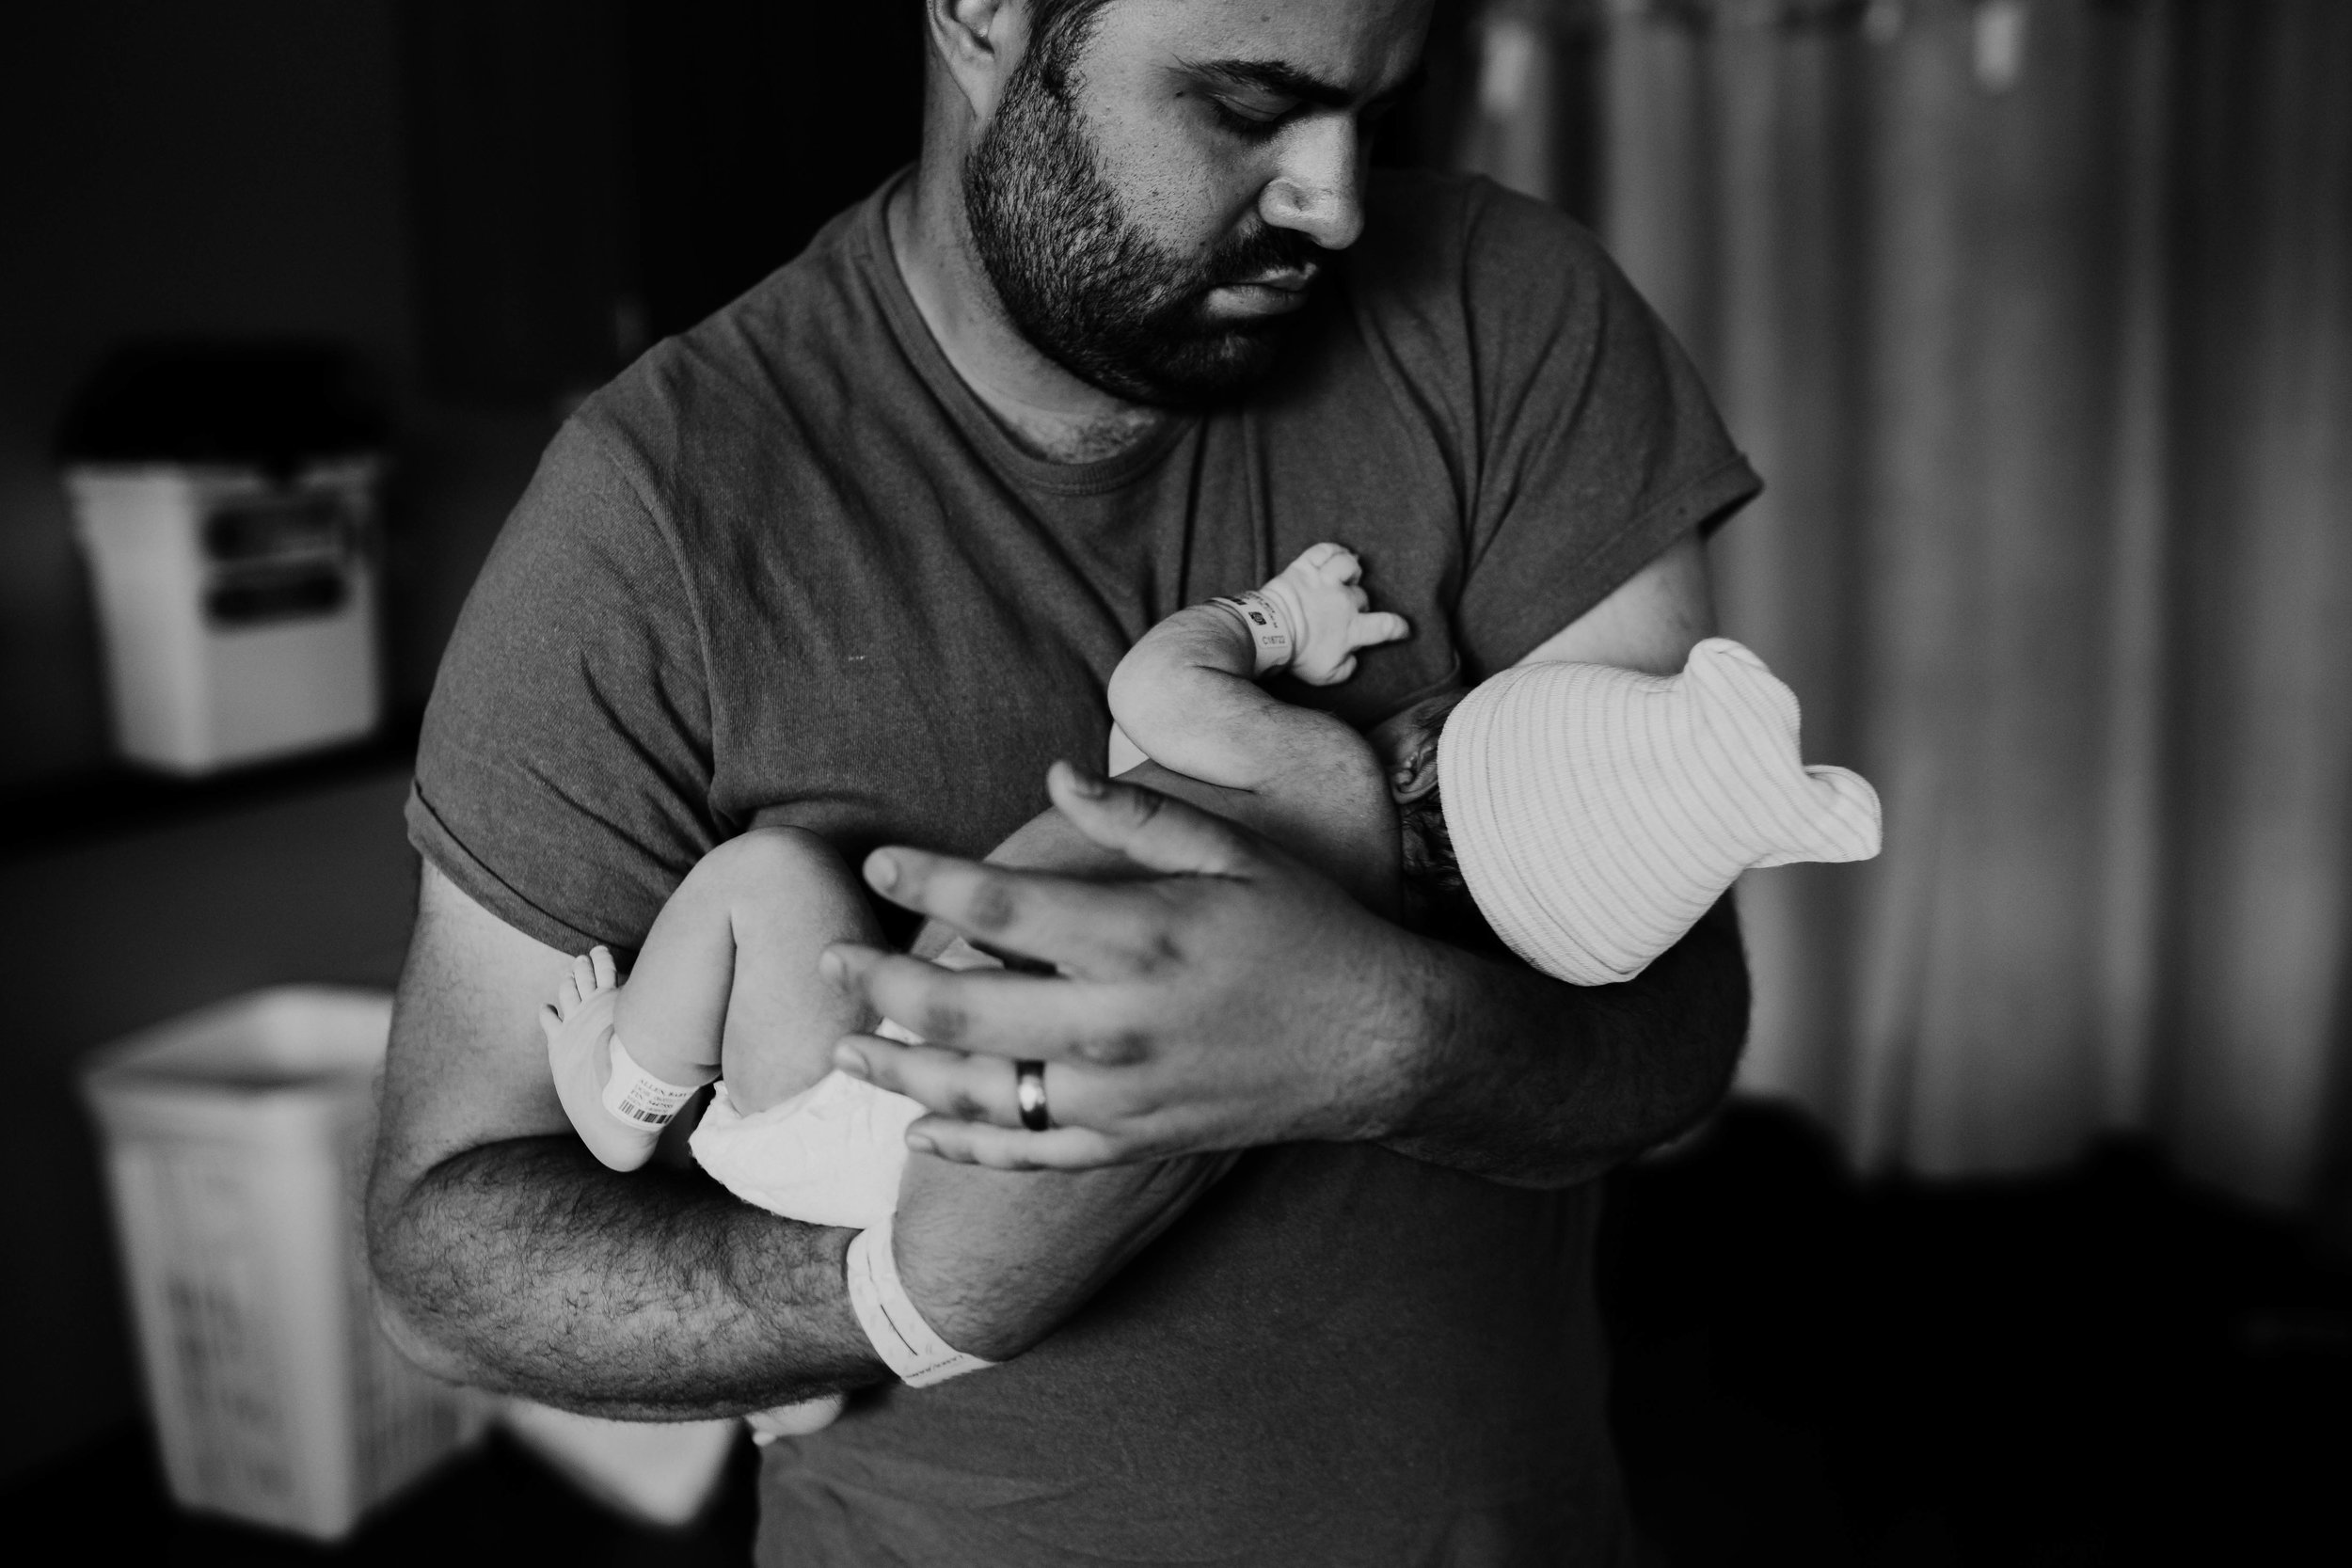 father holds his son in black and white | Luca A. Birth Story | Durham/Raleigh, NC | Hanna Hill Photography